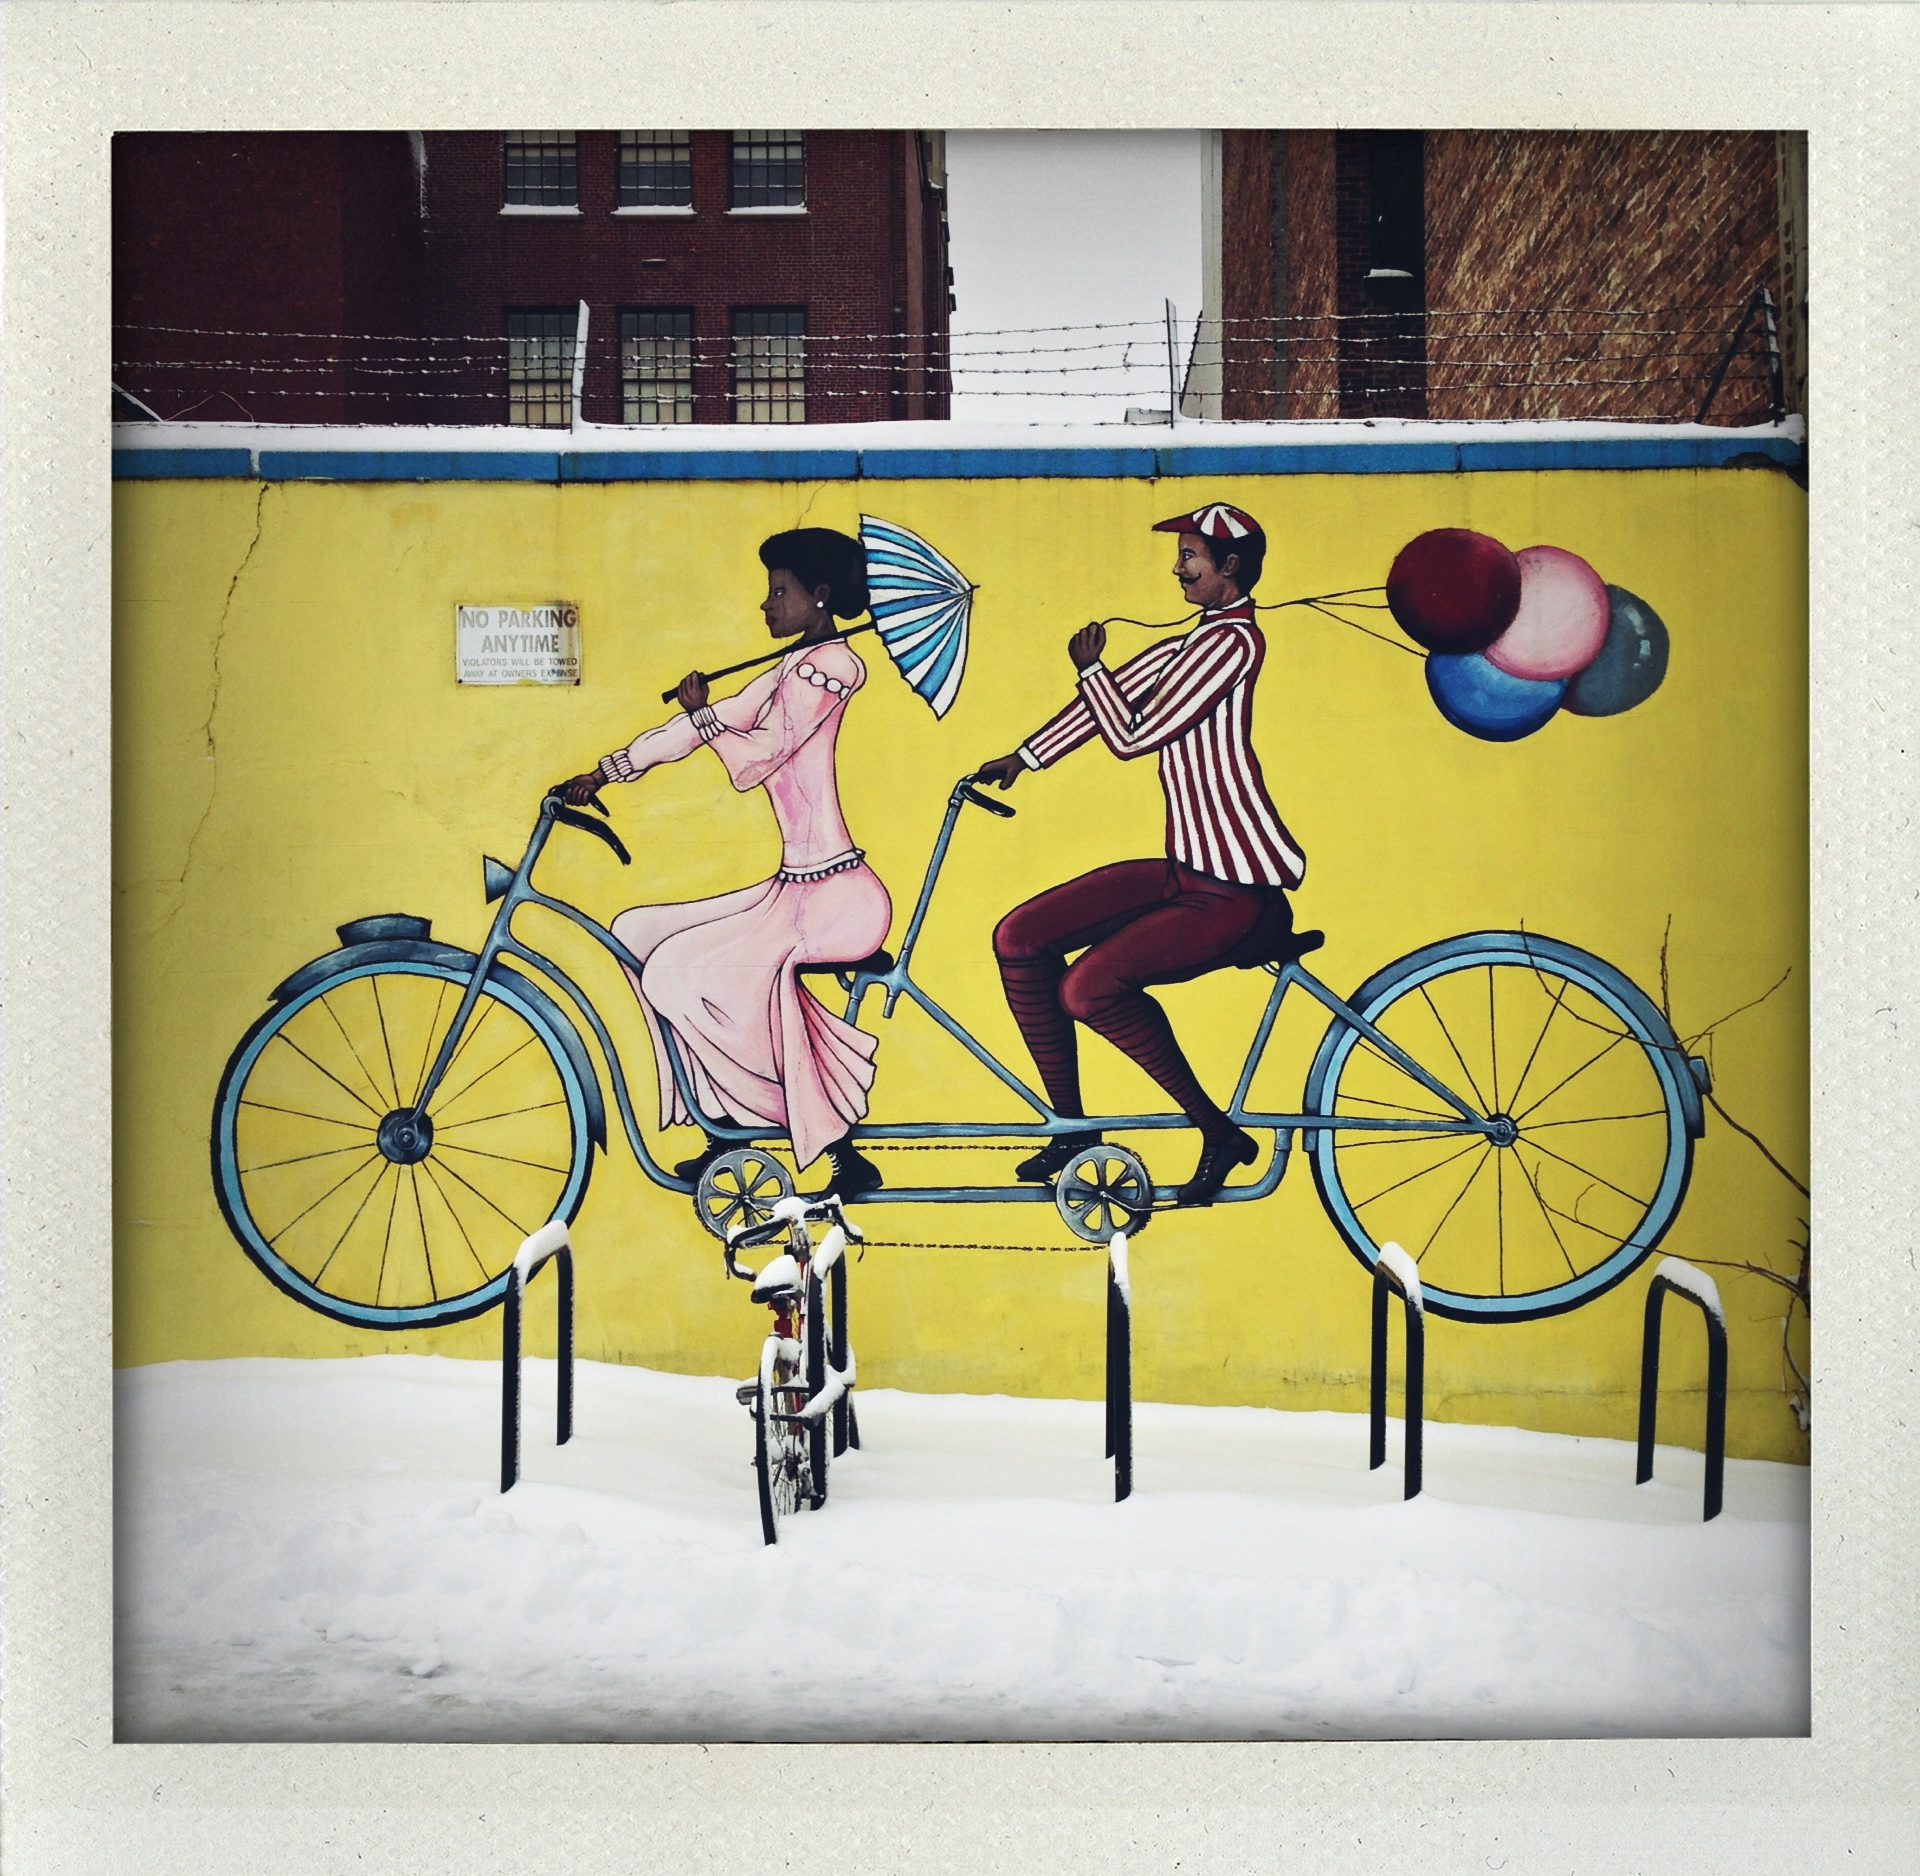 Permission to ride tandem.